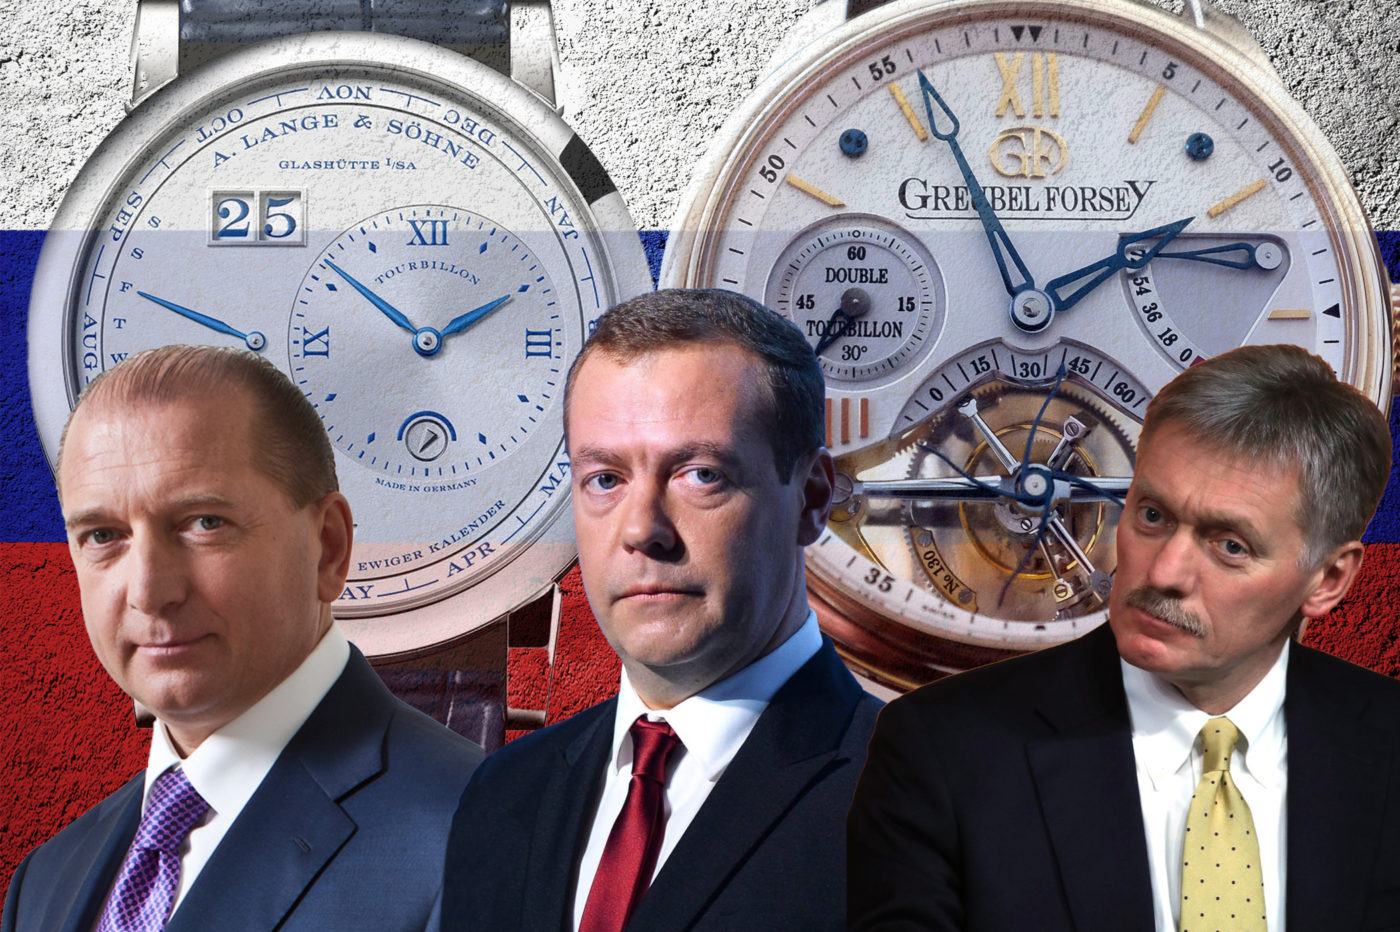 Timebloid Spectacular watches of Russian oligarchs